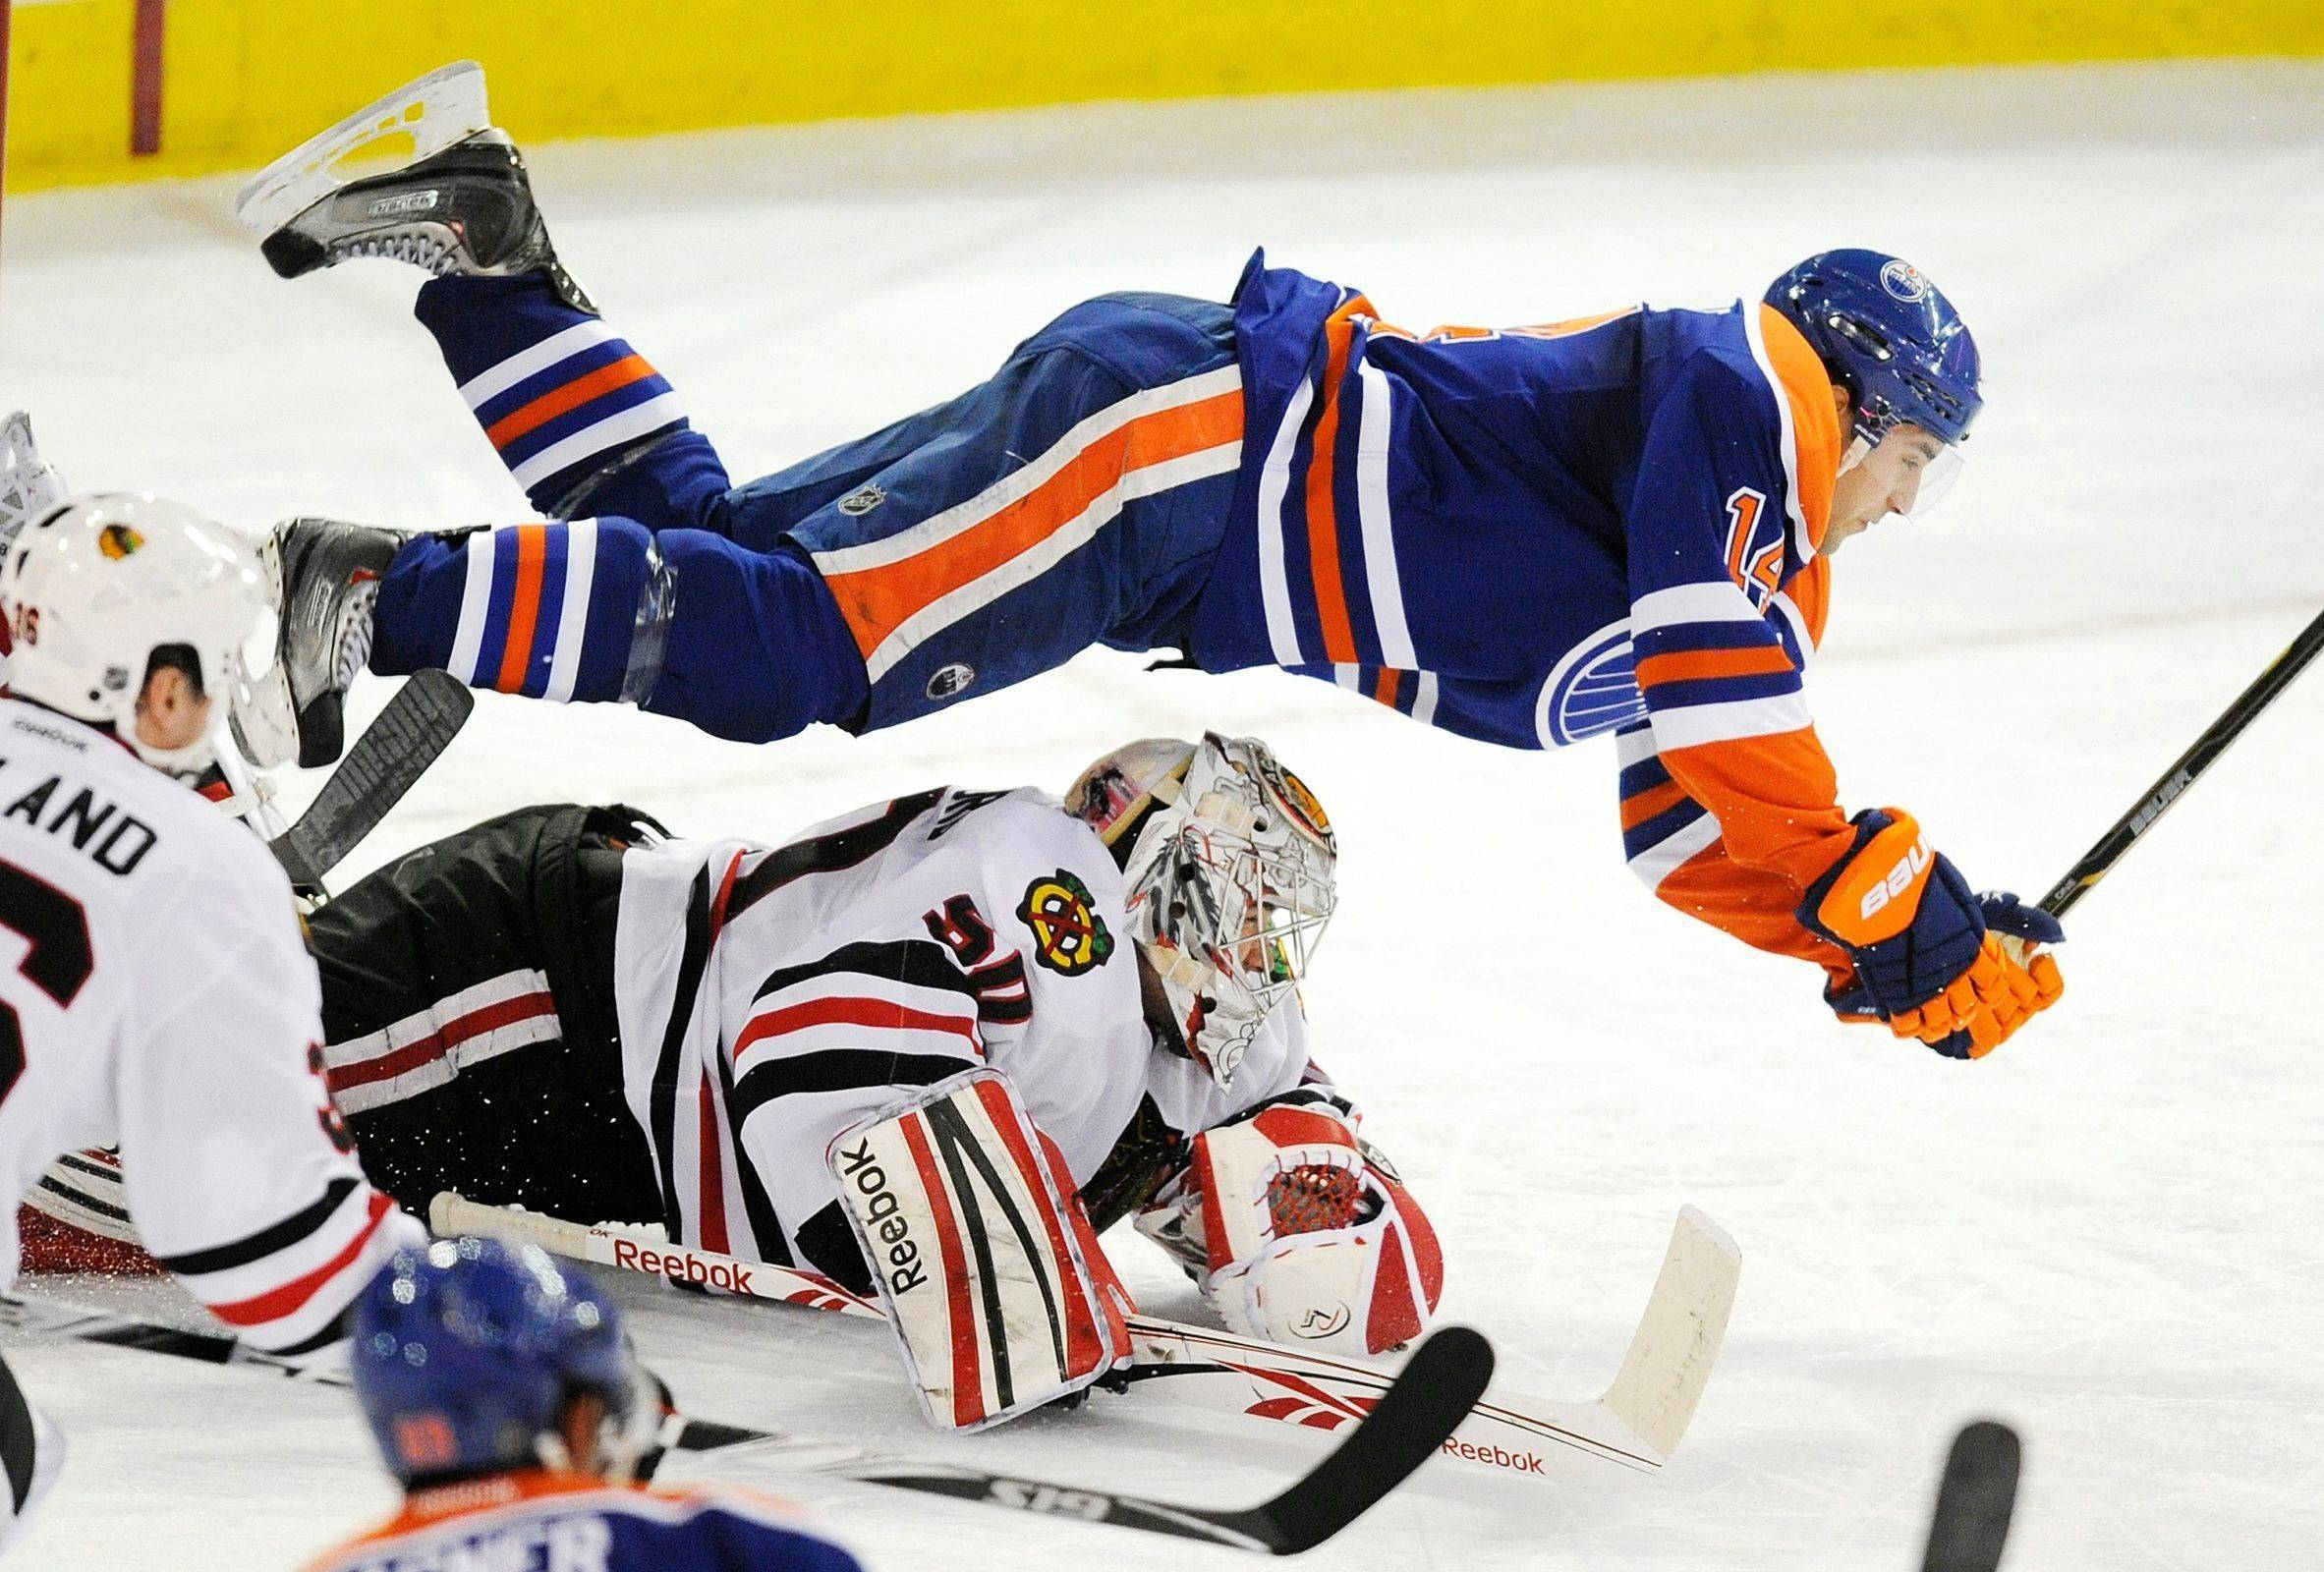 Edmonton Oilers' Jordan Eberle, top, flies over the Chicago Blackhawks goalie Cory Crawford during the second period of an NHL hockey game in Edmonton, Alberta, on Thursday, Feb. 2, 2012.